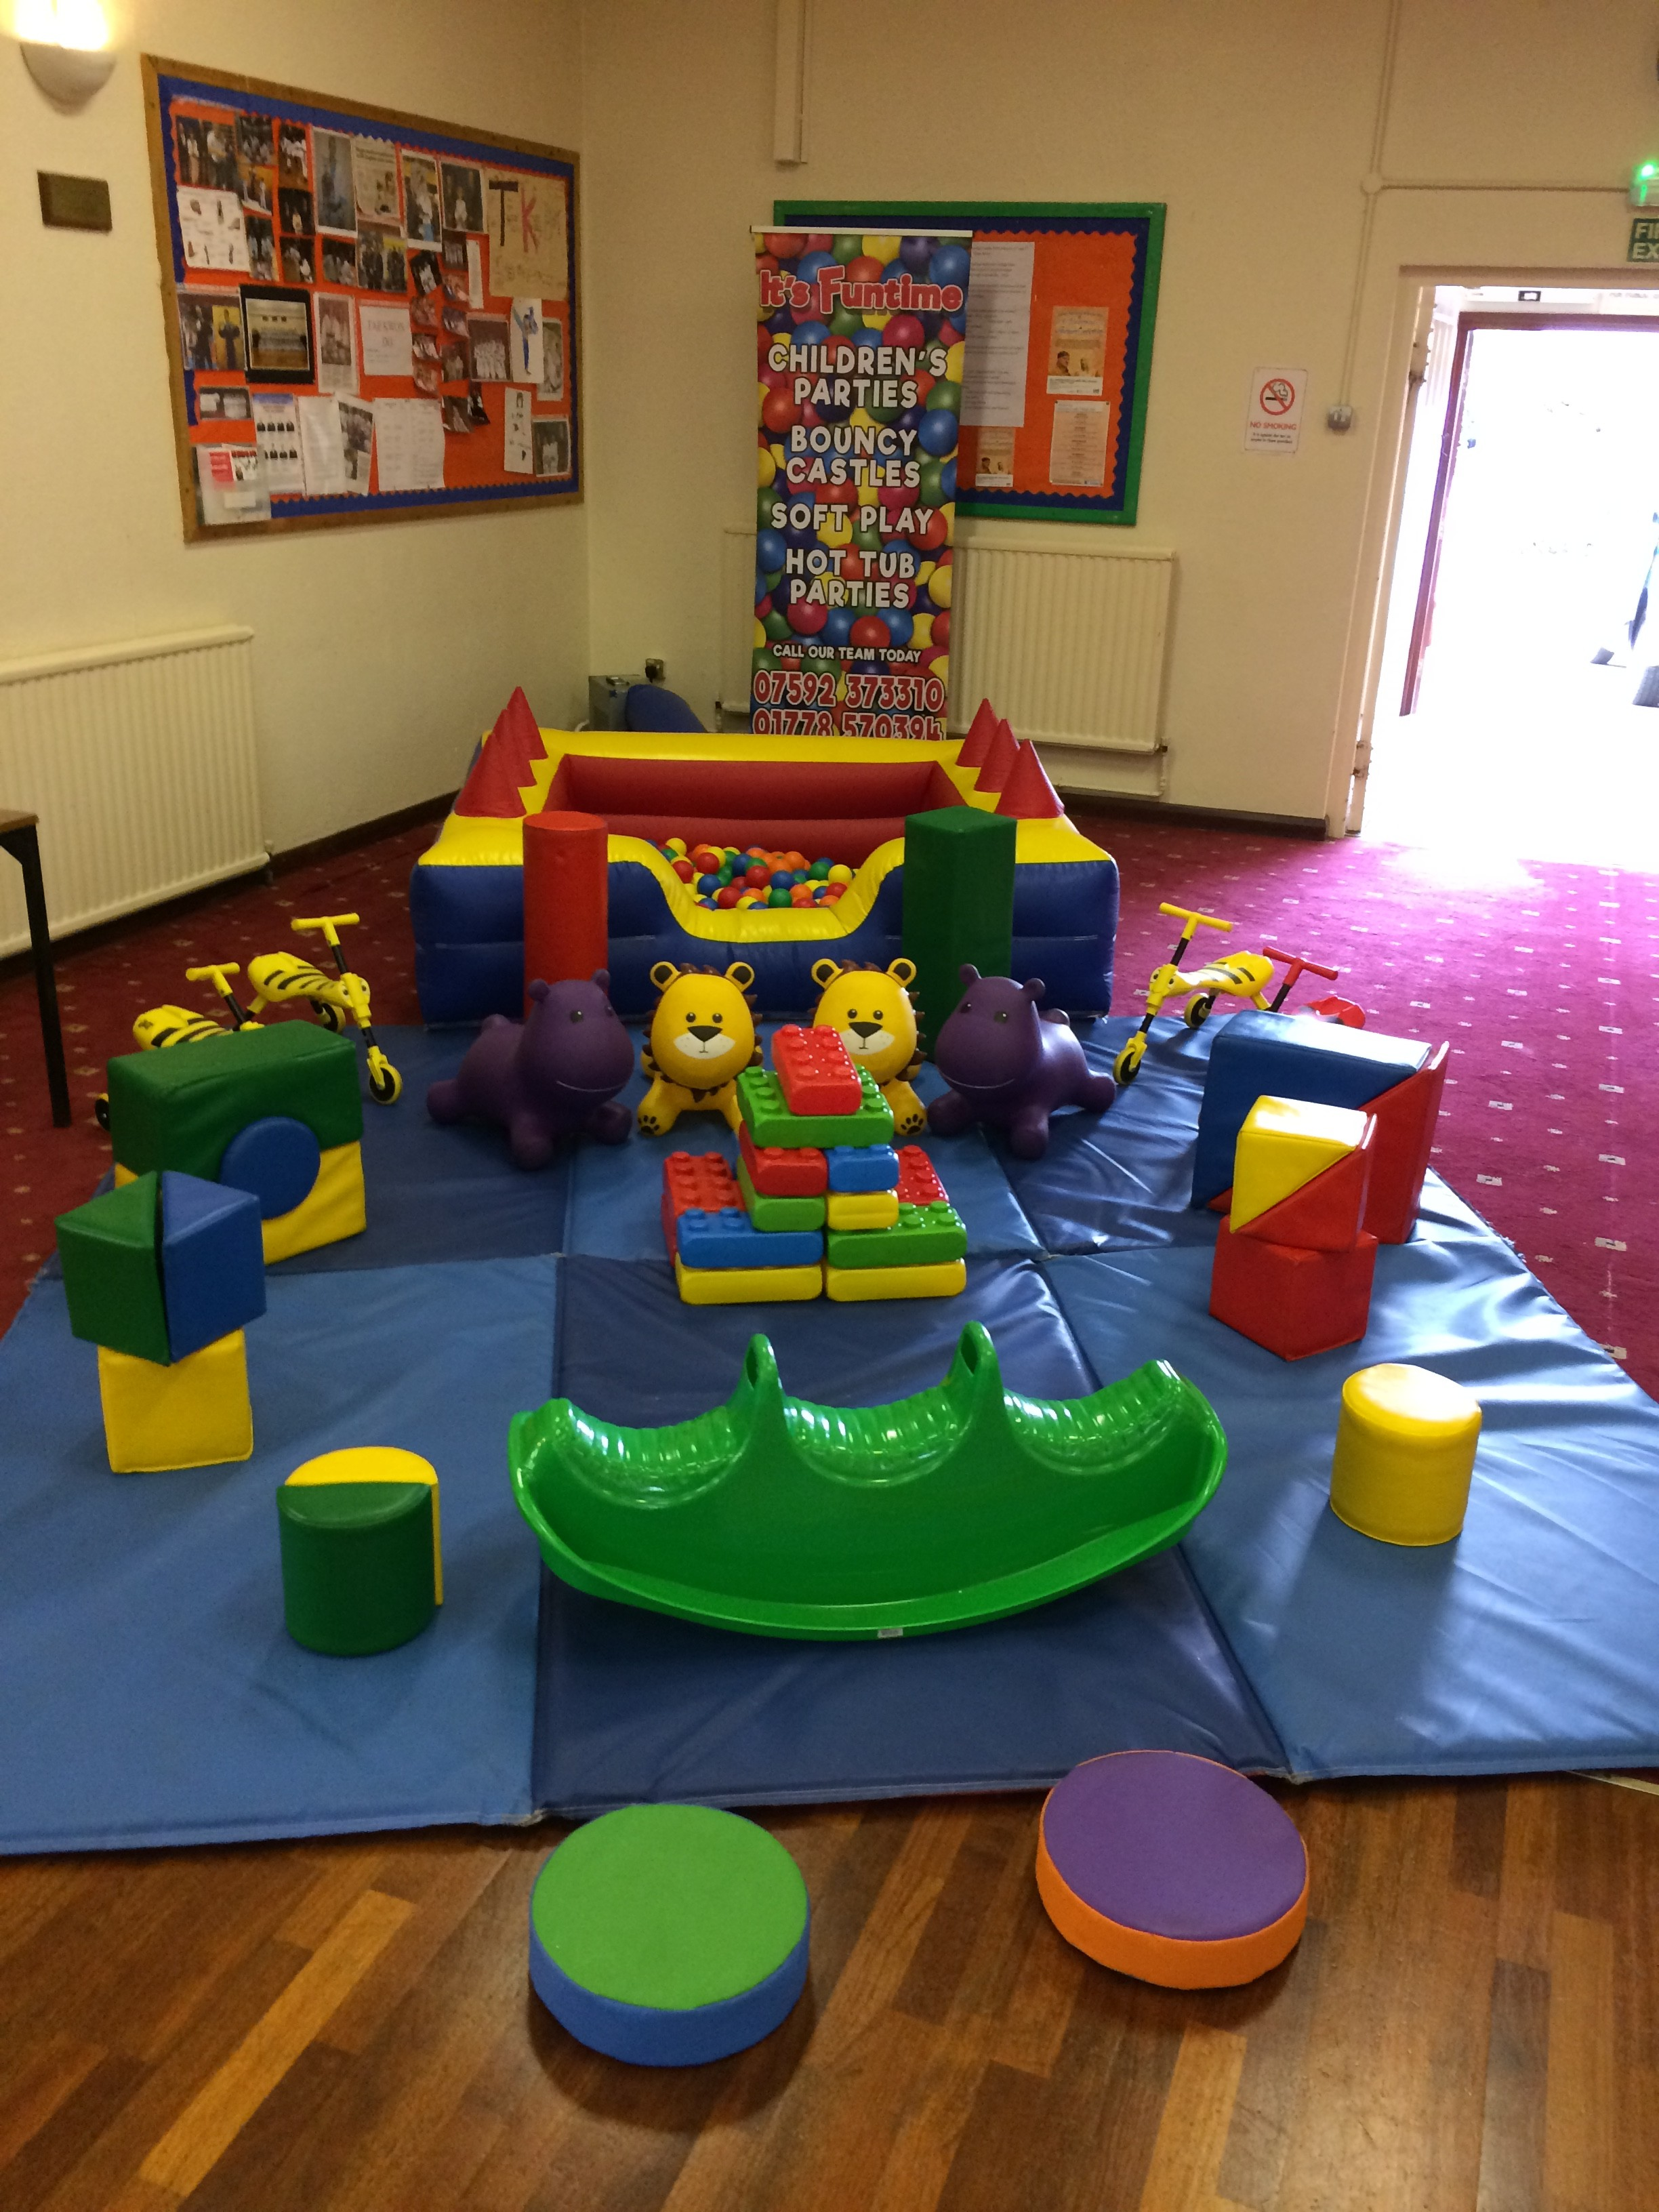 Soft play Equipment in Billingborough Village Hall